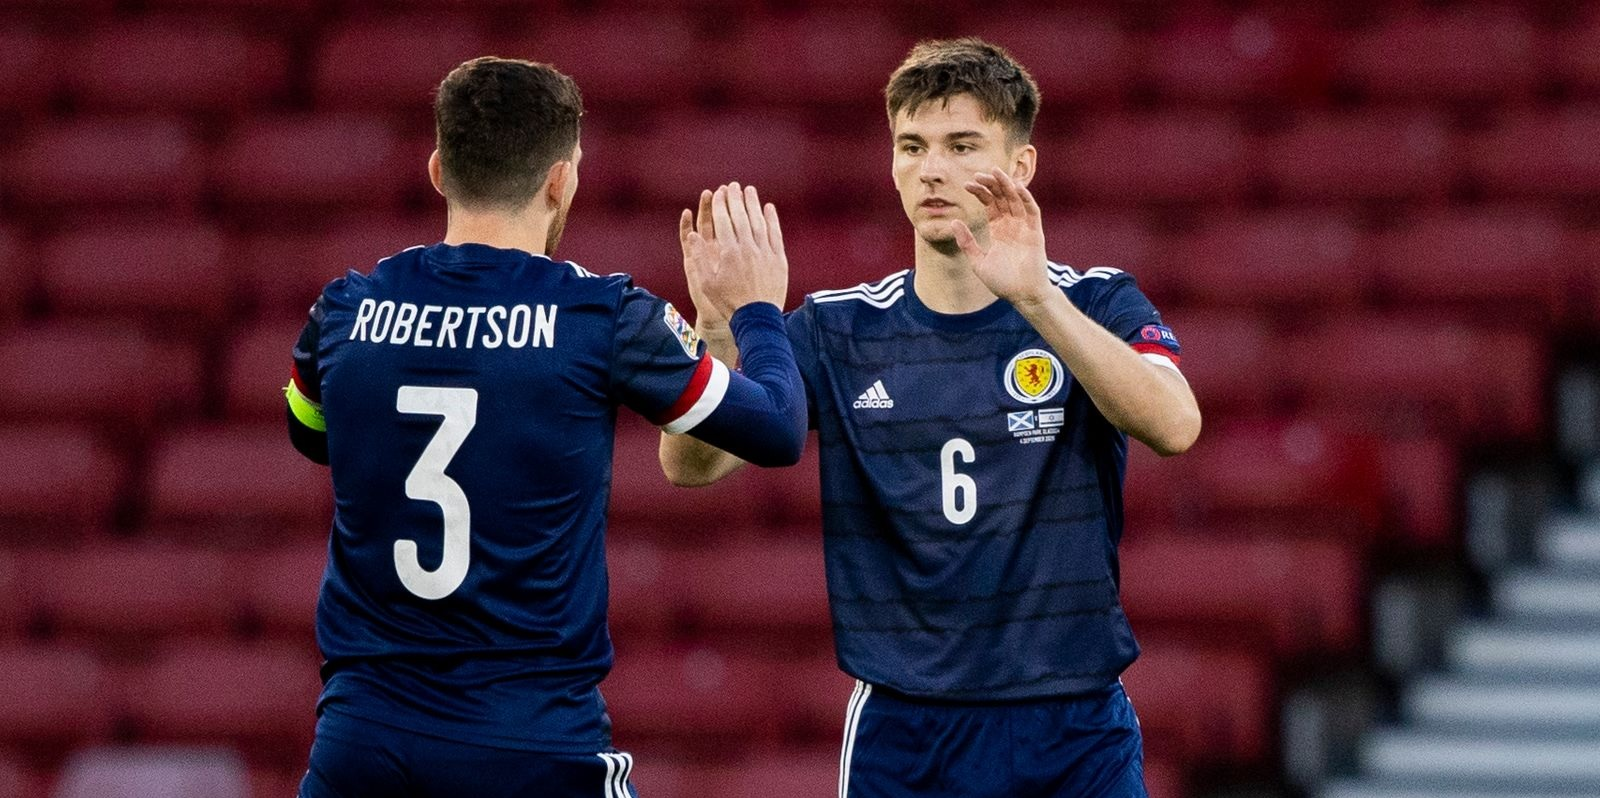 Andy Robertson surprised Scotland teammates and staff with generous gift